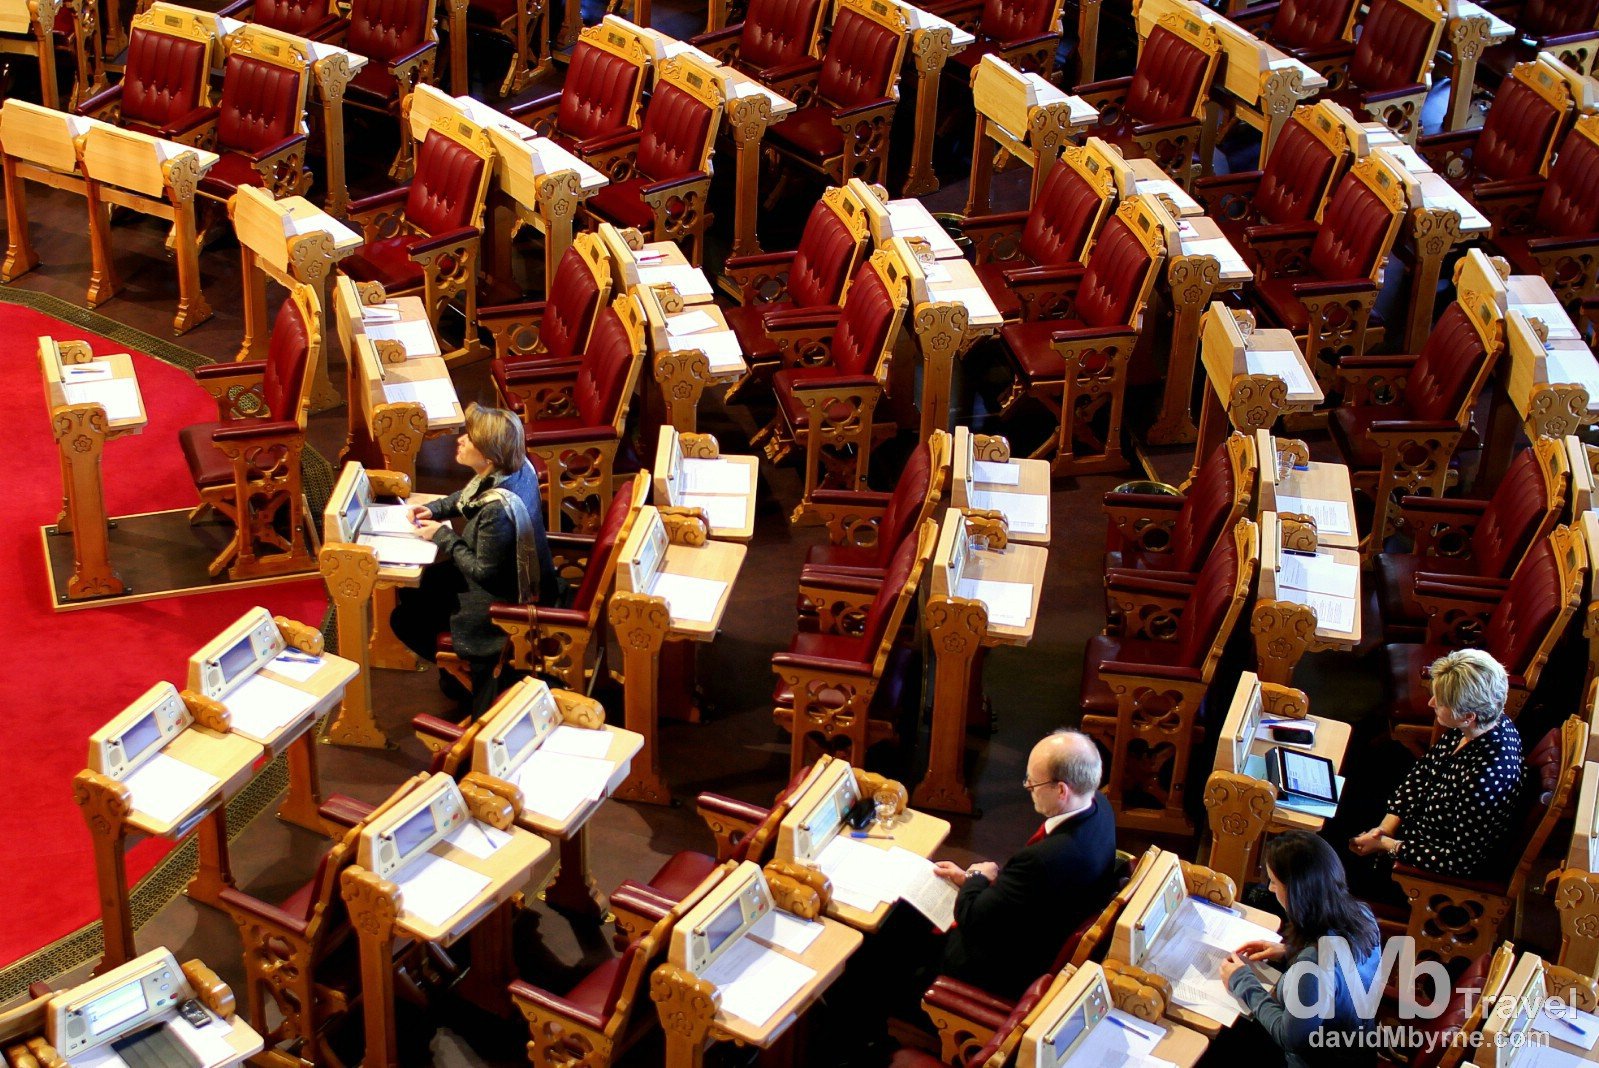 A chamber of Stortinget (Parliament) in Oslo, Norway. November 29th 2012.